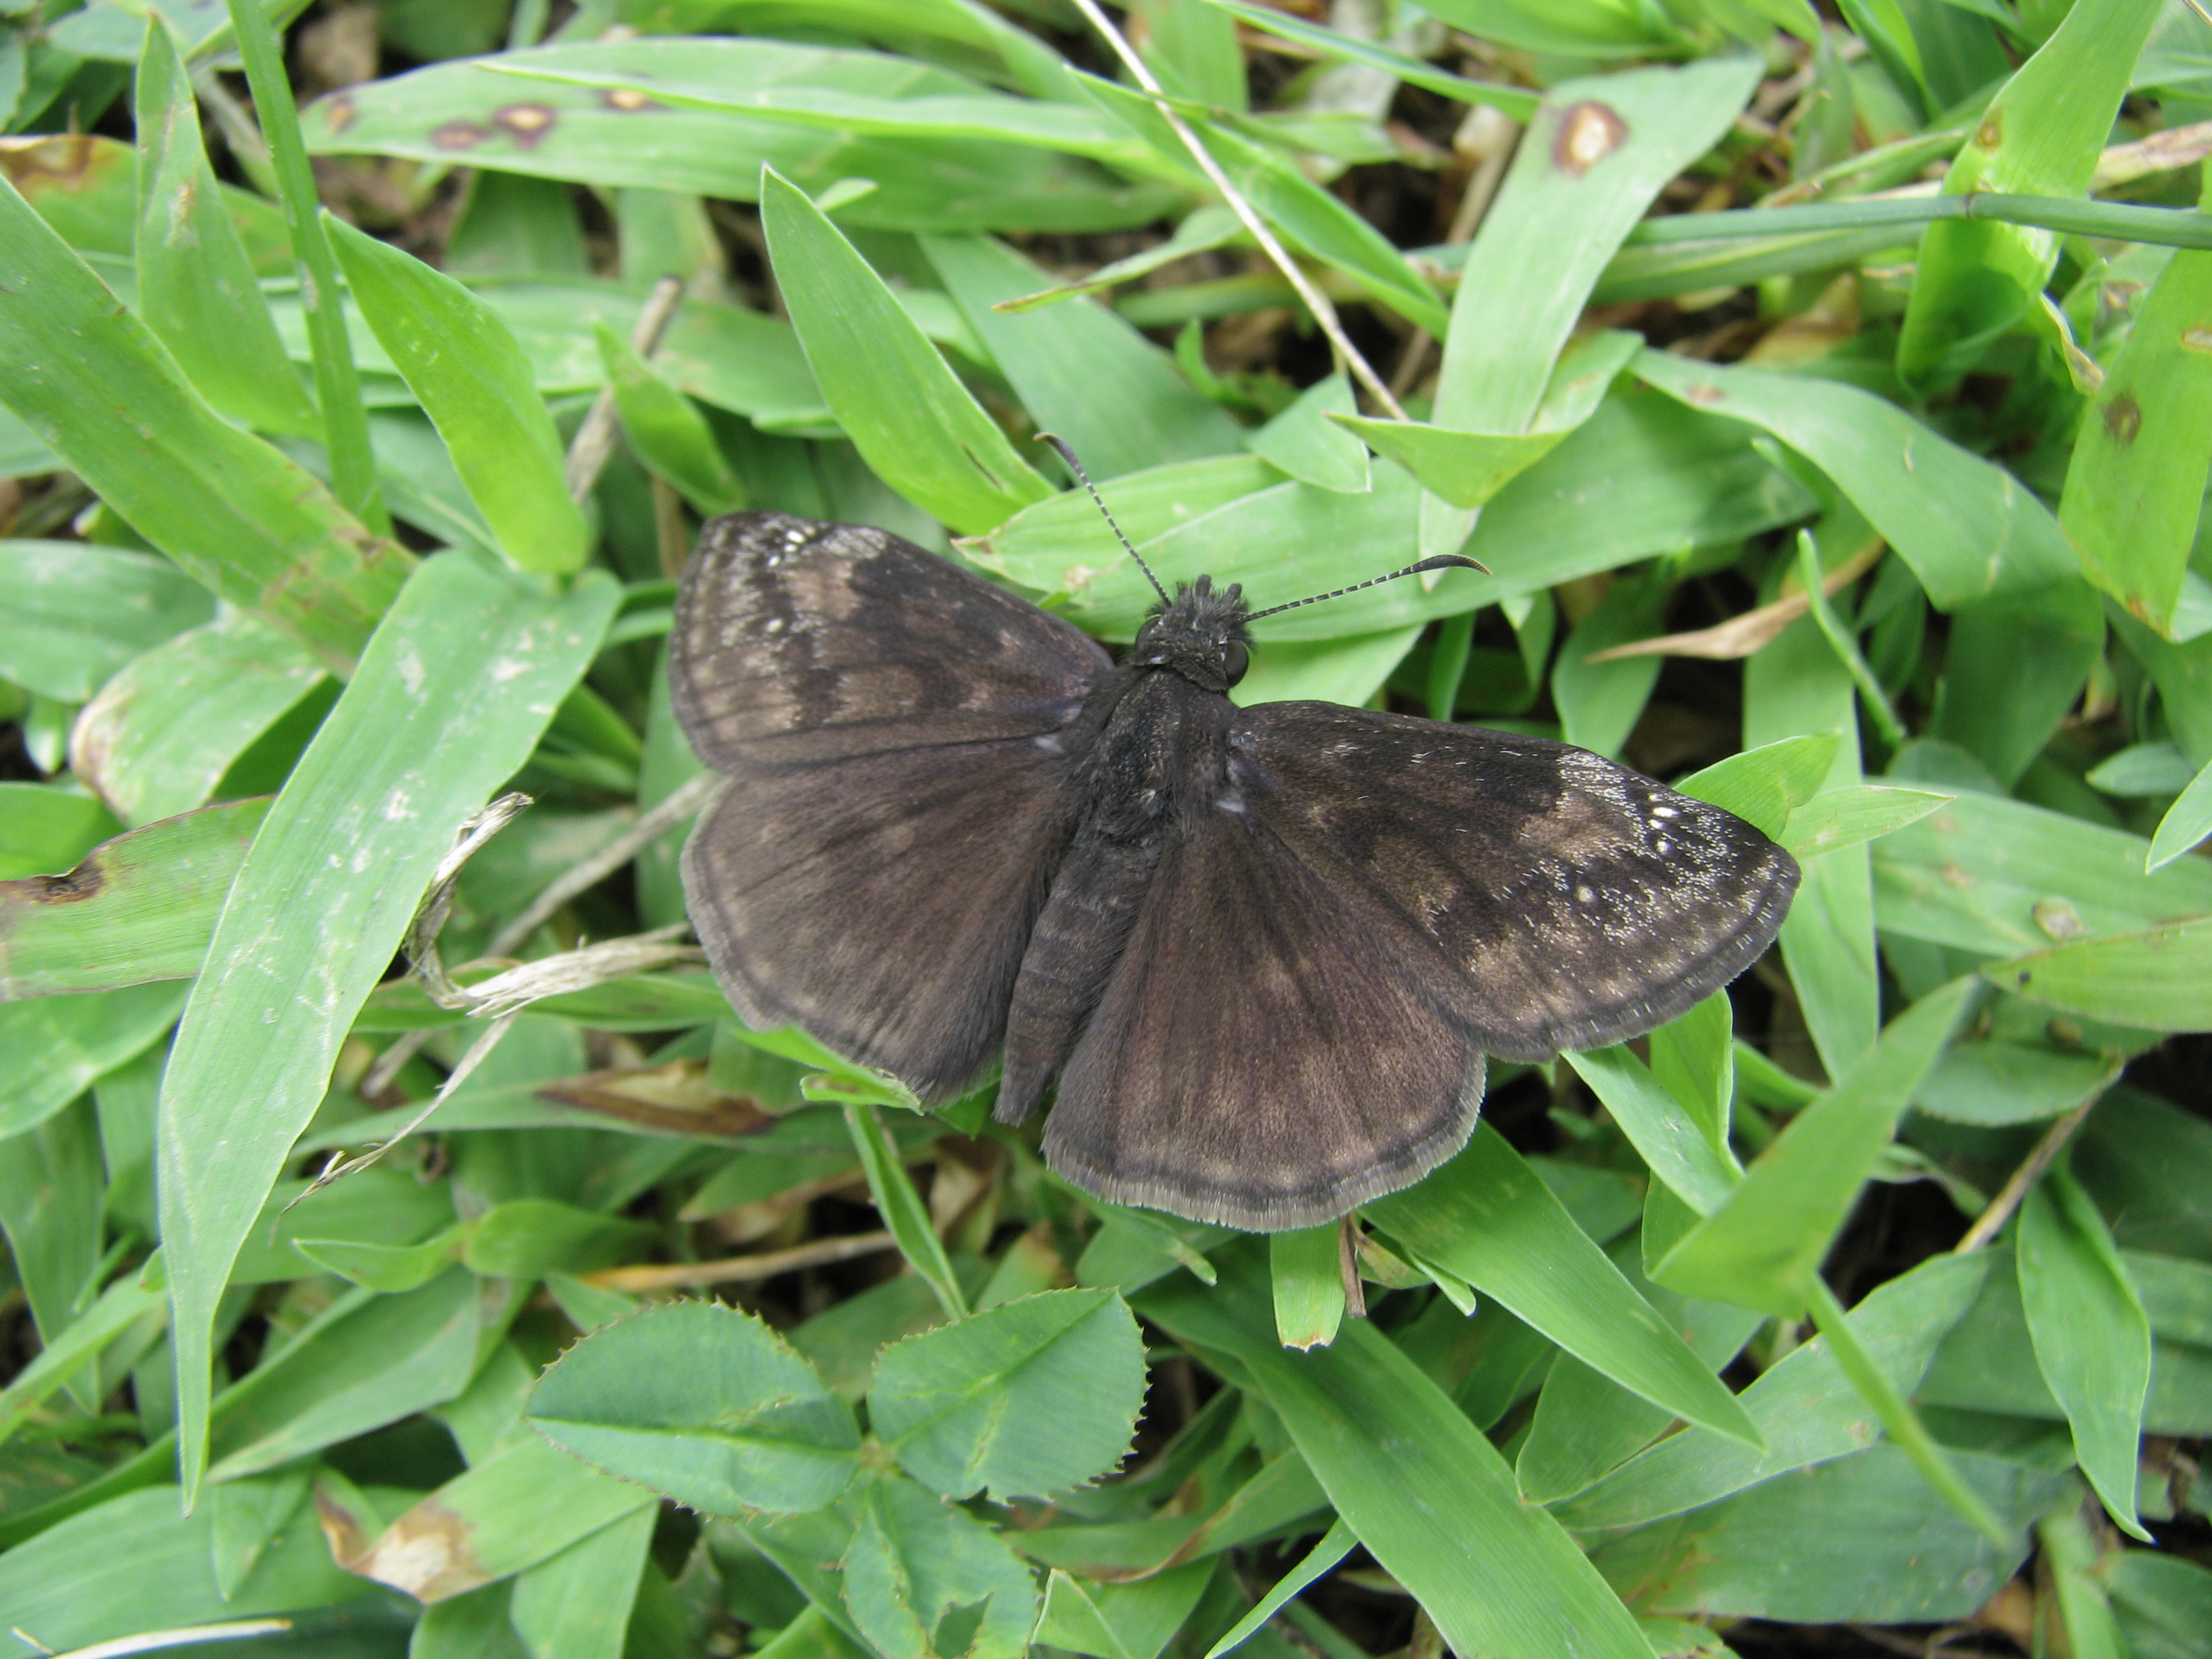 Wild Indigo Duskywing (a spreadwing skipper) at rest with wings spread.